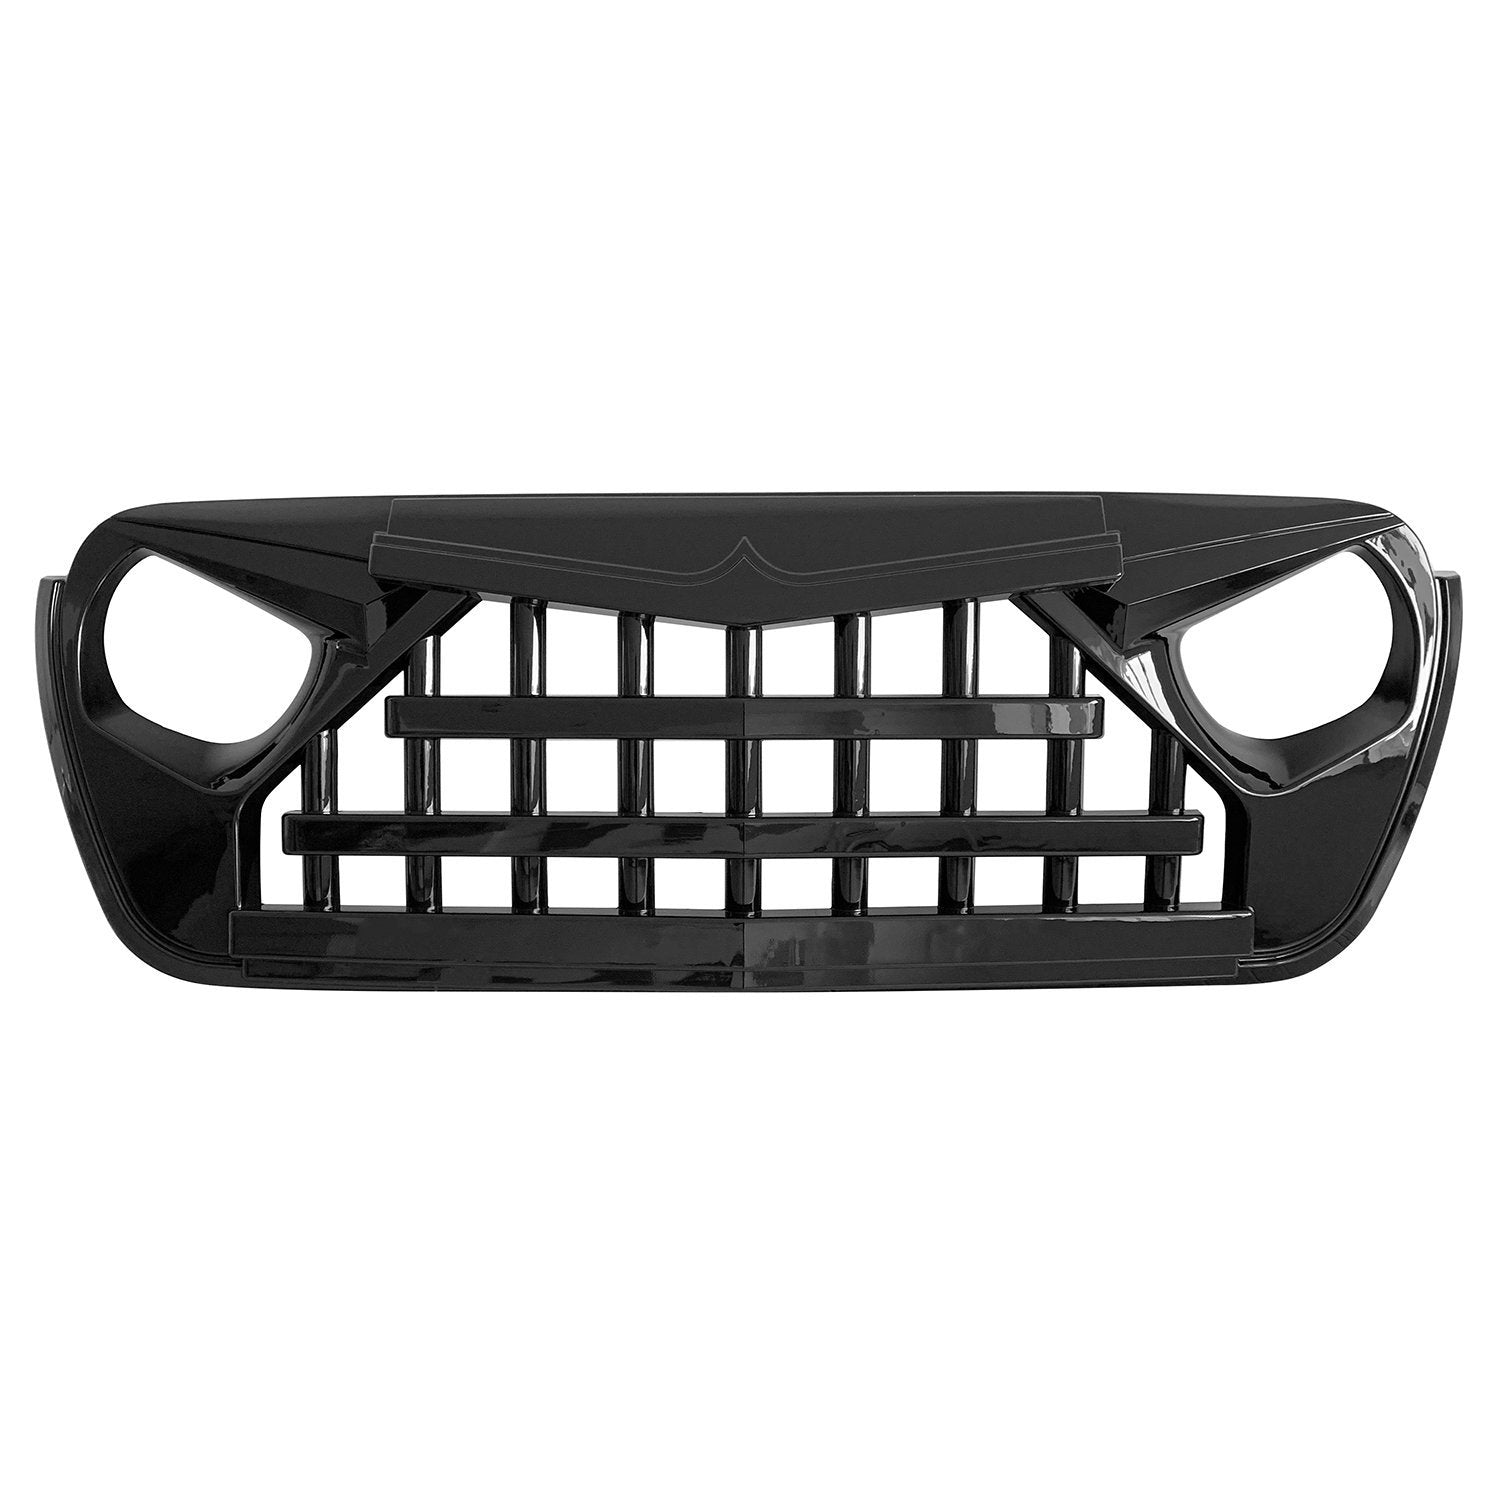 Glossy Black Knight Grill For Jeep Wrangler JL 2018-2020 JT Gladiator